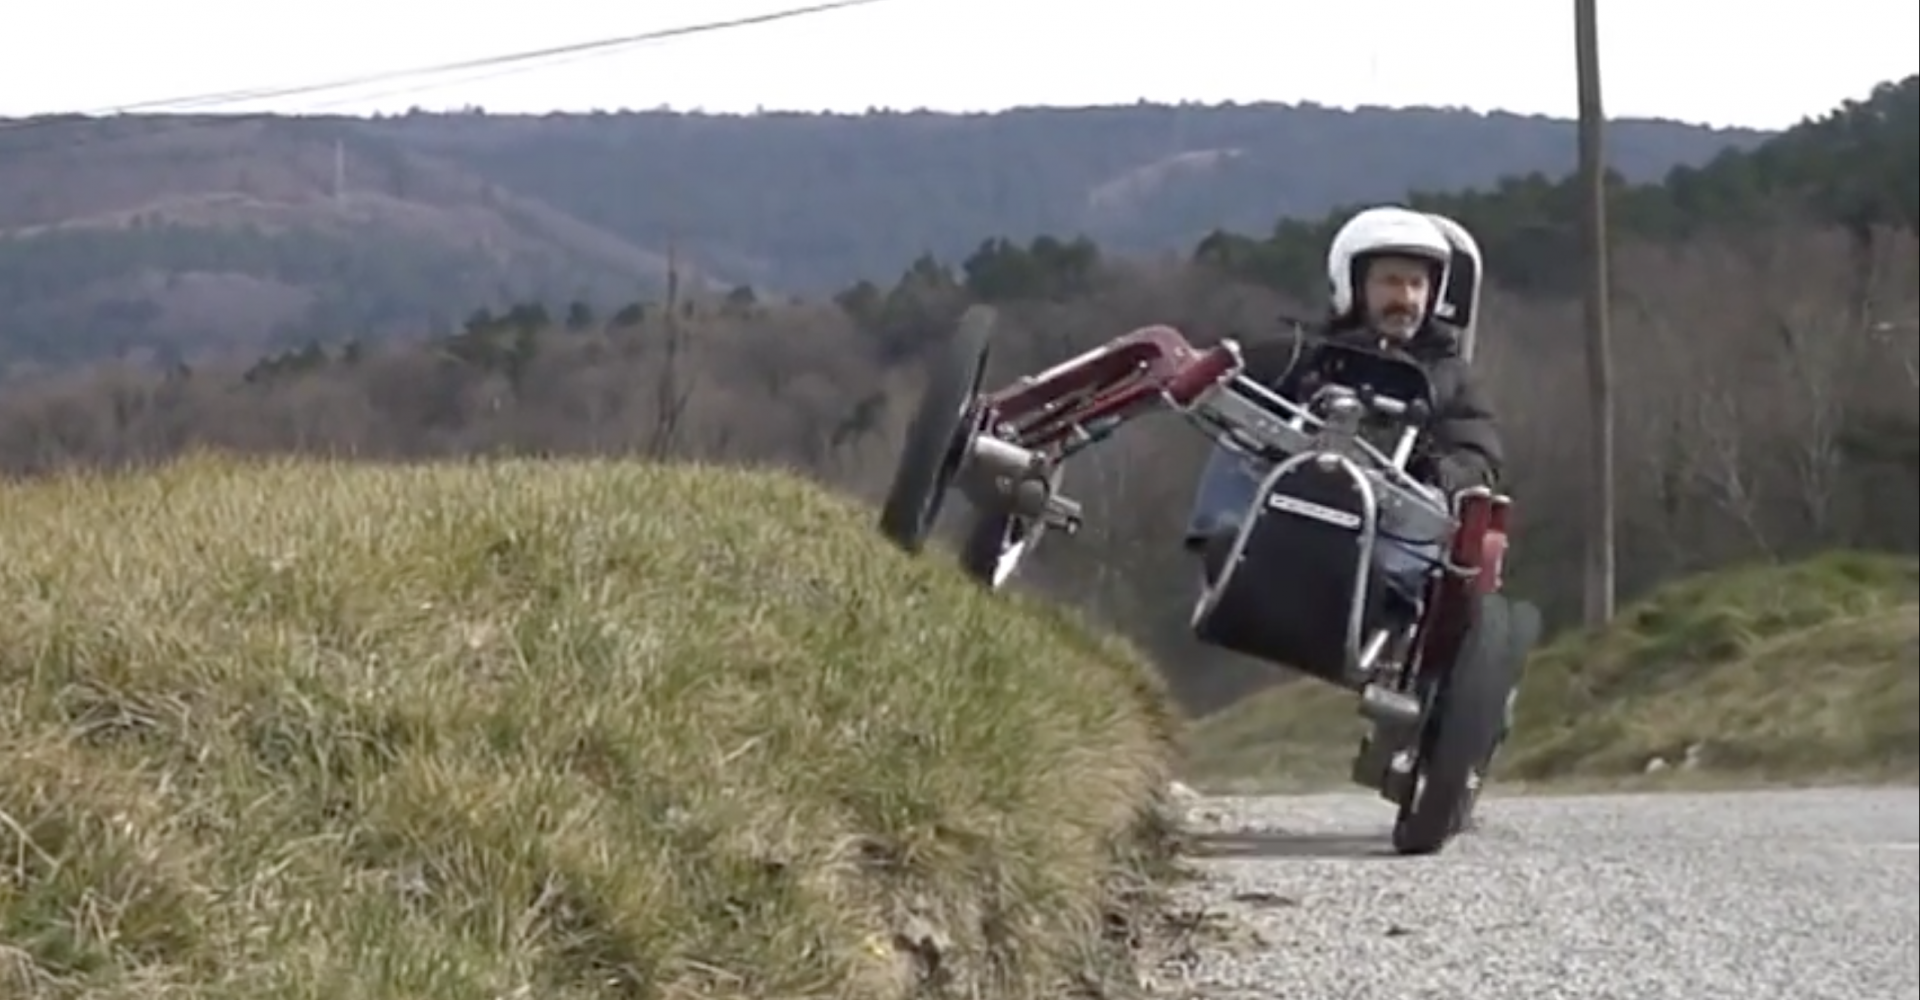 Spider Car Goes Where No Car Has Gone Before